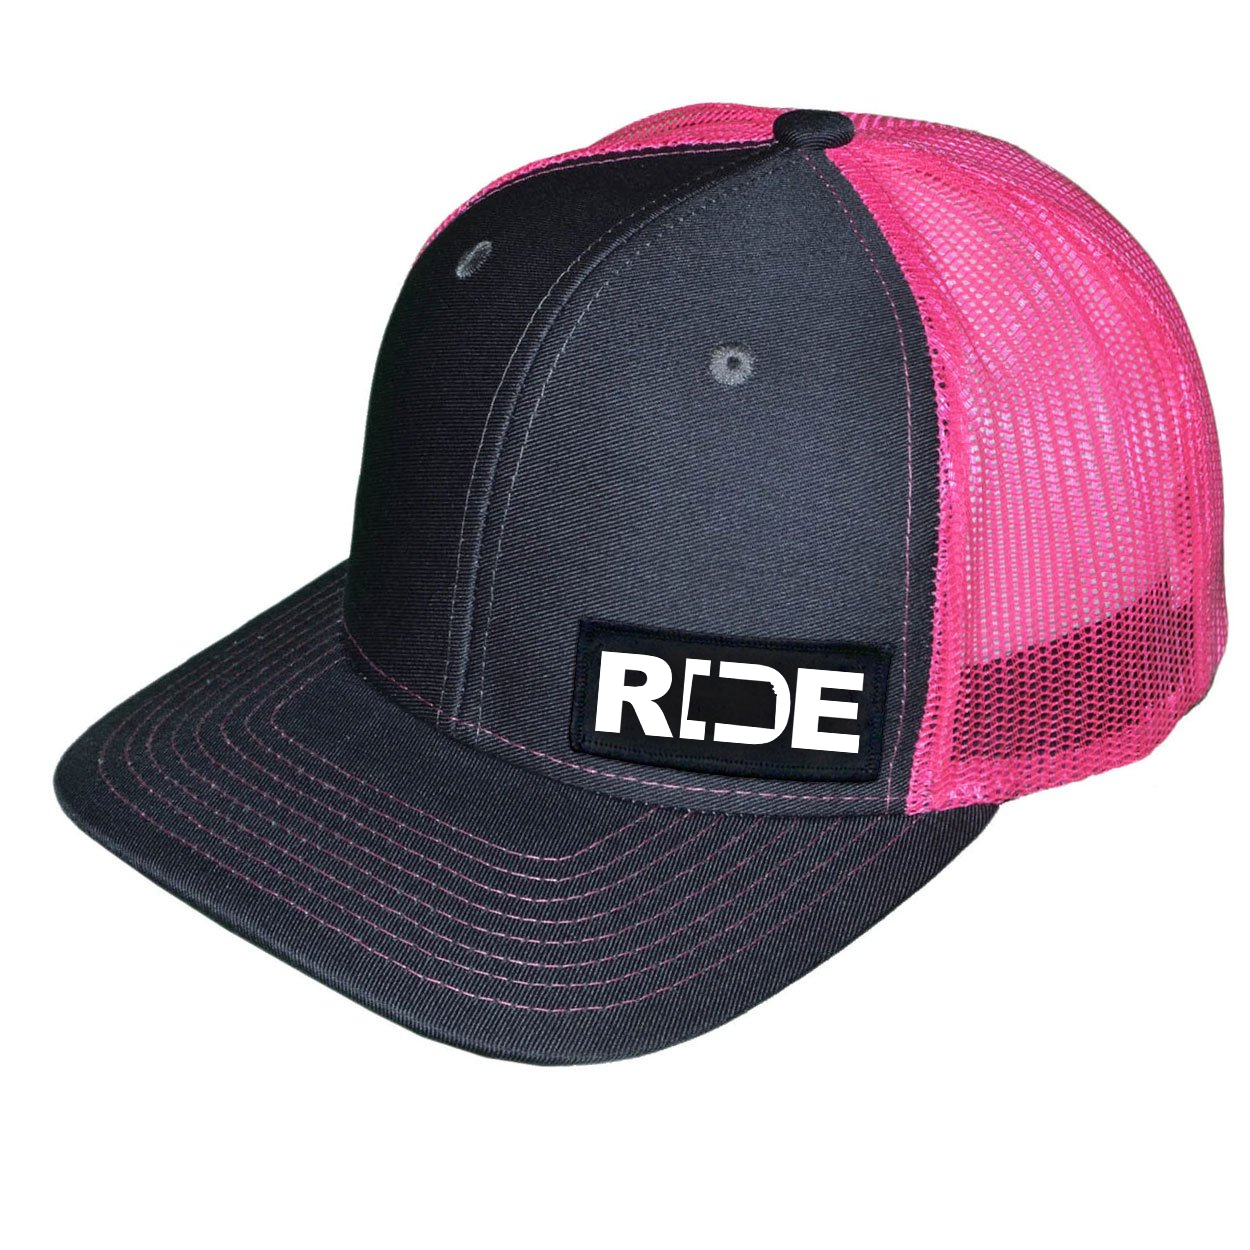 Ride Kansas Night Out Woven Patch Snapback Trucker Hat Dark Gray/Neon Pink (White Logo)